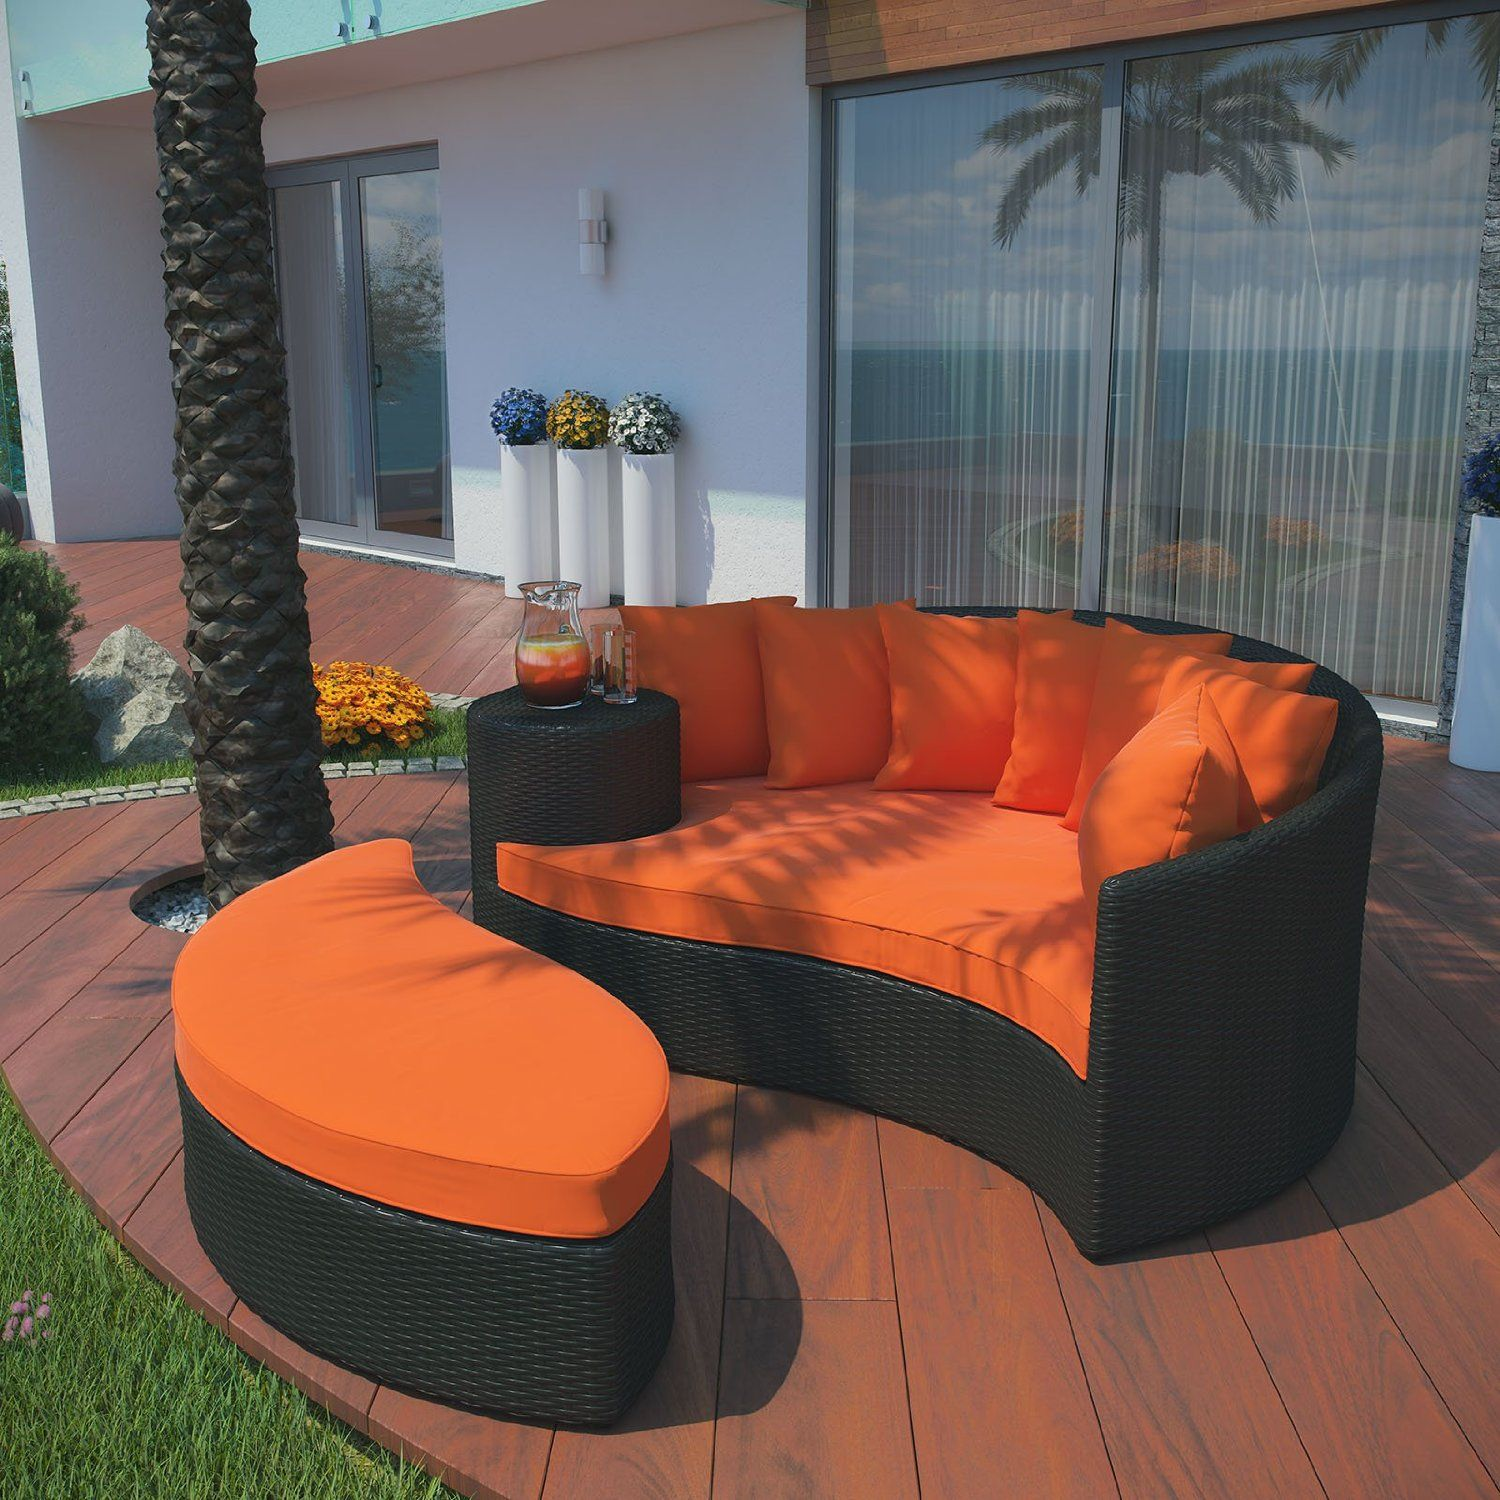 Amazon Com Lexmod Taiji Outdoor Wicker Patio Daybed With Ottoman Various Colors A Patio Furnishings Discount Outdoor Furniture Wicker Outdoor Furniture Set